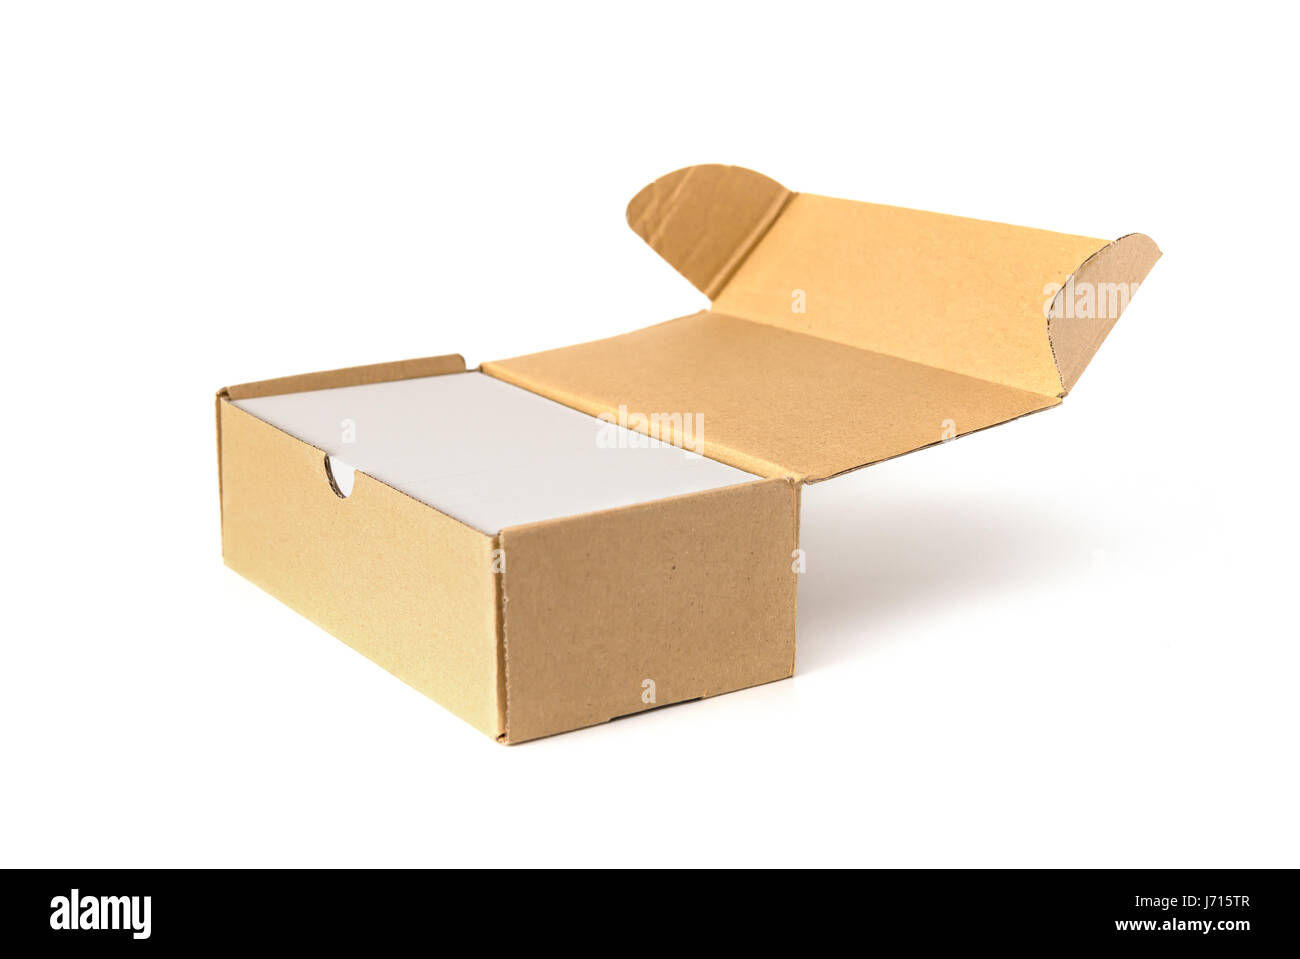 Box of business cards choice image business card template box of business cards on white stock photo 142012103 alamy box of business cards on white reheart Gallery